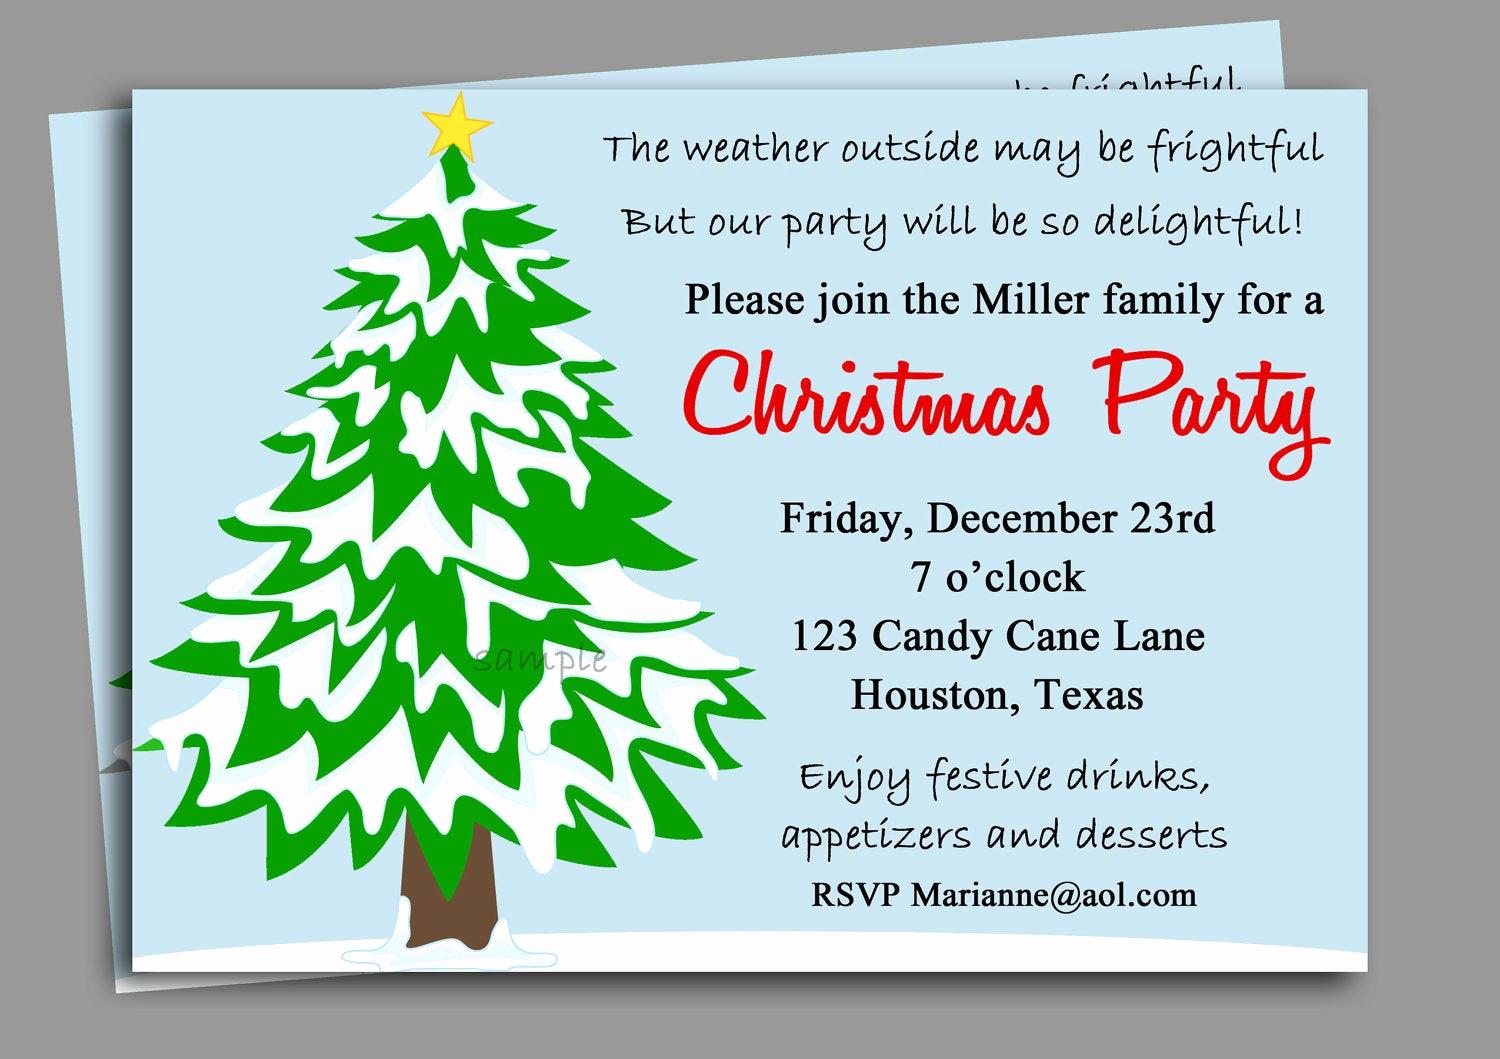 Christmas Party Invitation Wording Best Of Christmas Party Invitation Printable Winter Wonderland